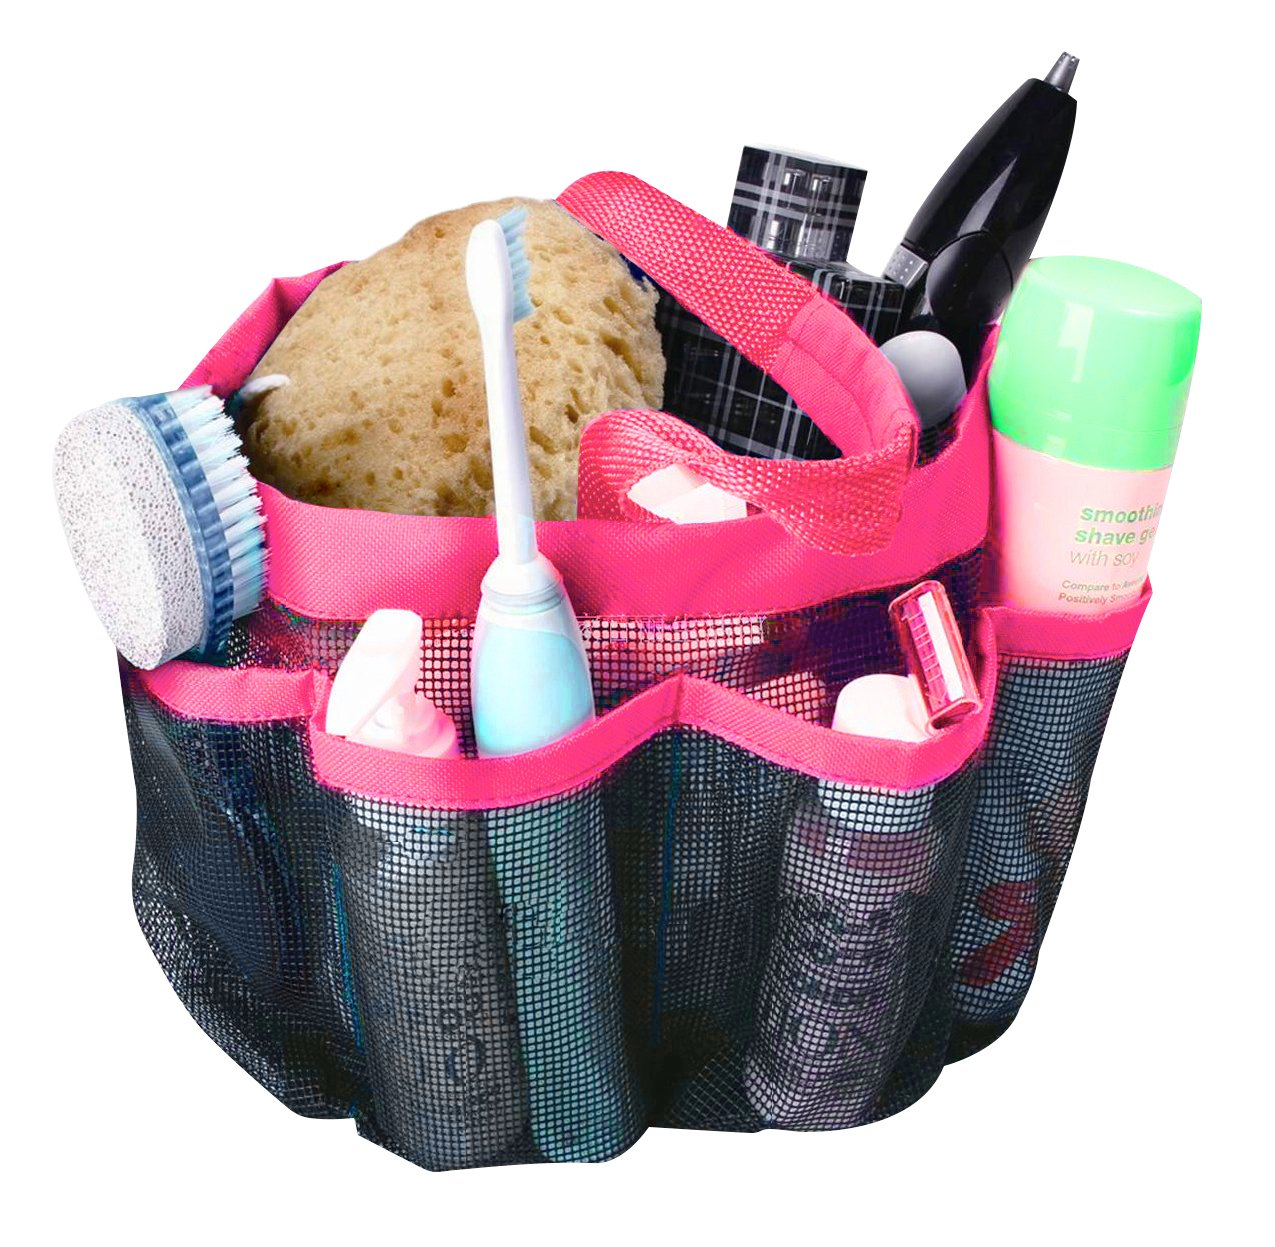 An organized mesh shower caddy.